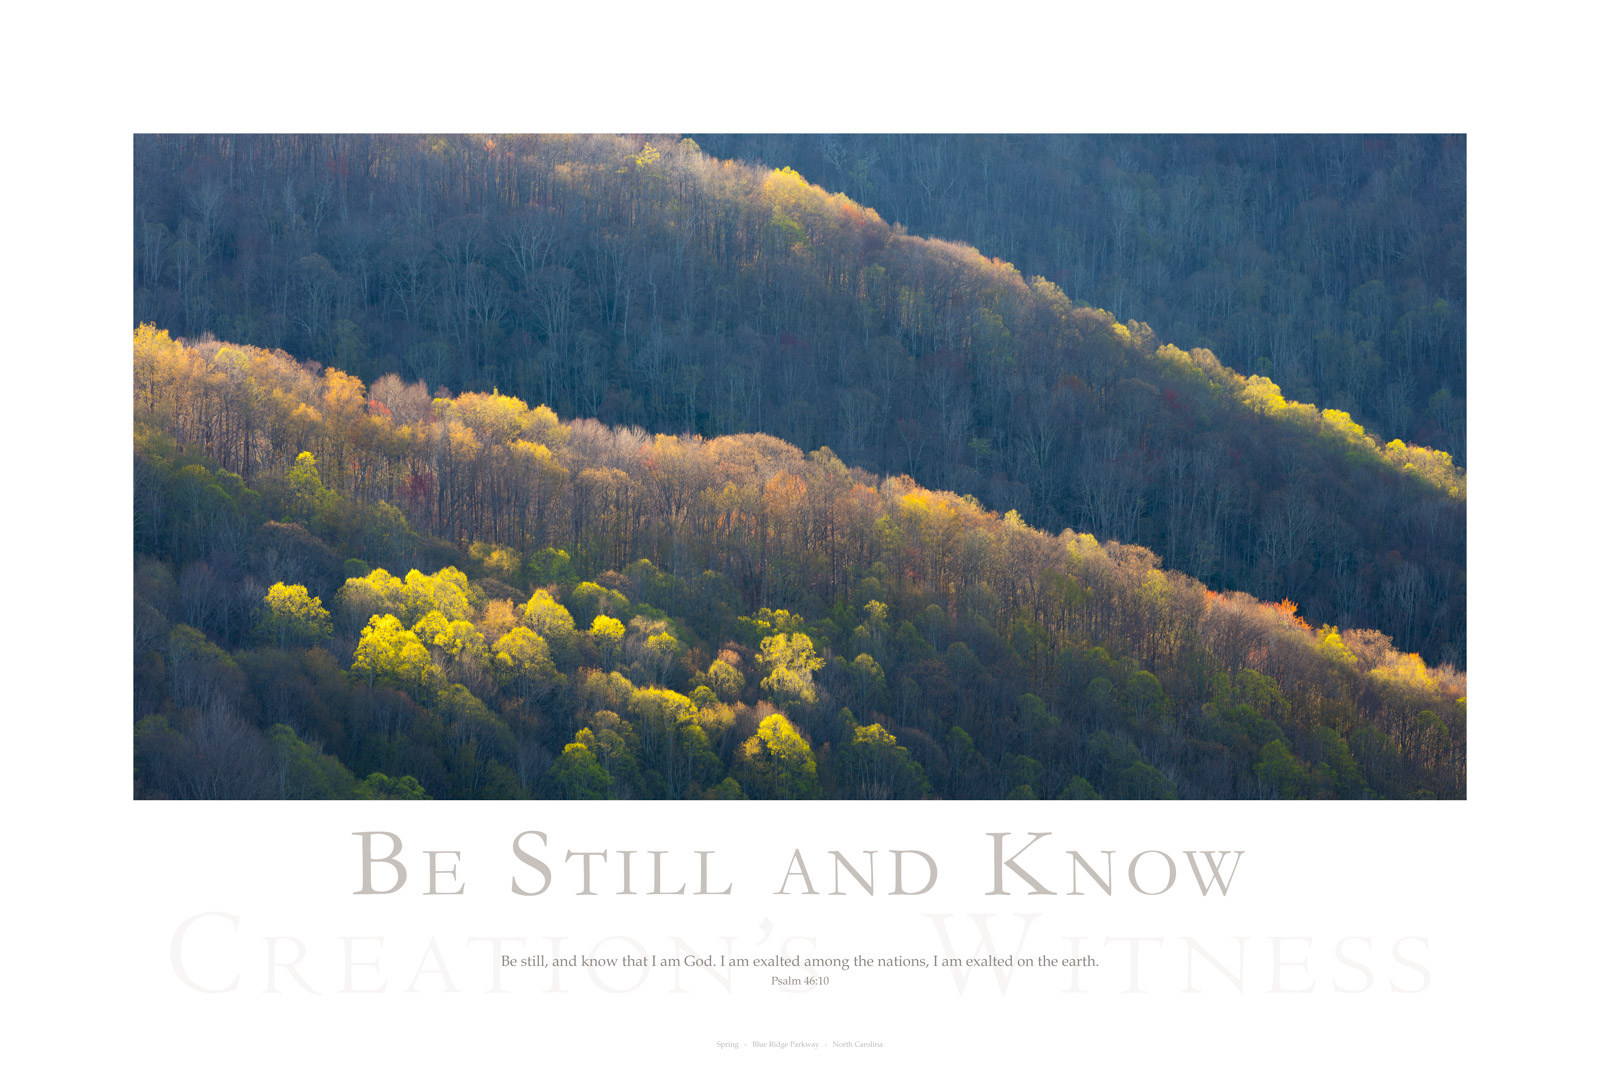 Be still, and know that I am God. I am exalted among the nations, I am exalted on the earth. Psalm 46:10